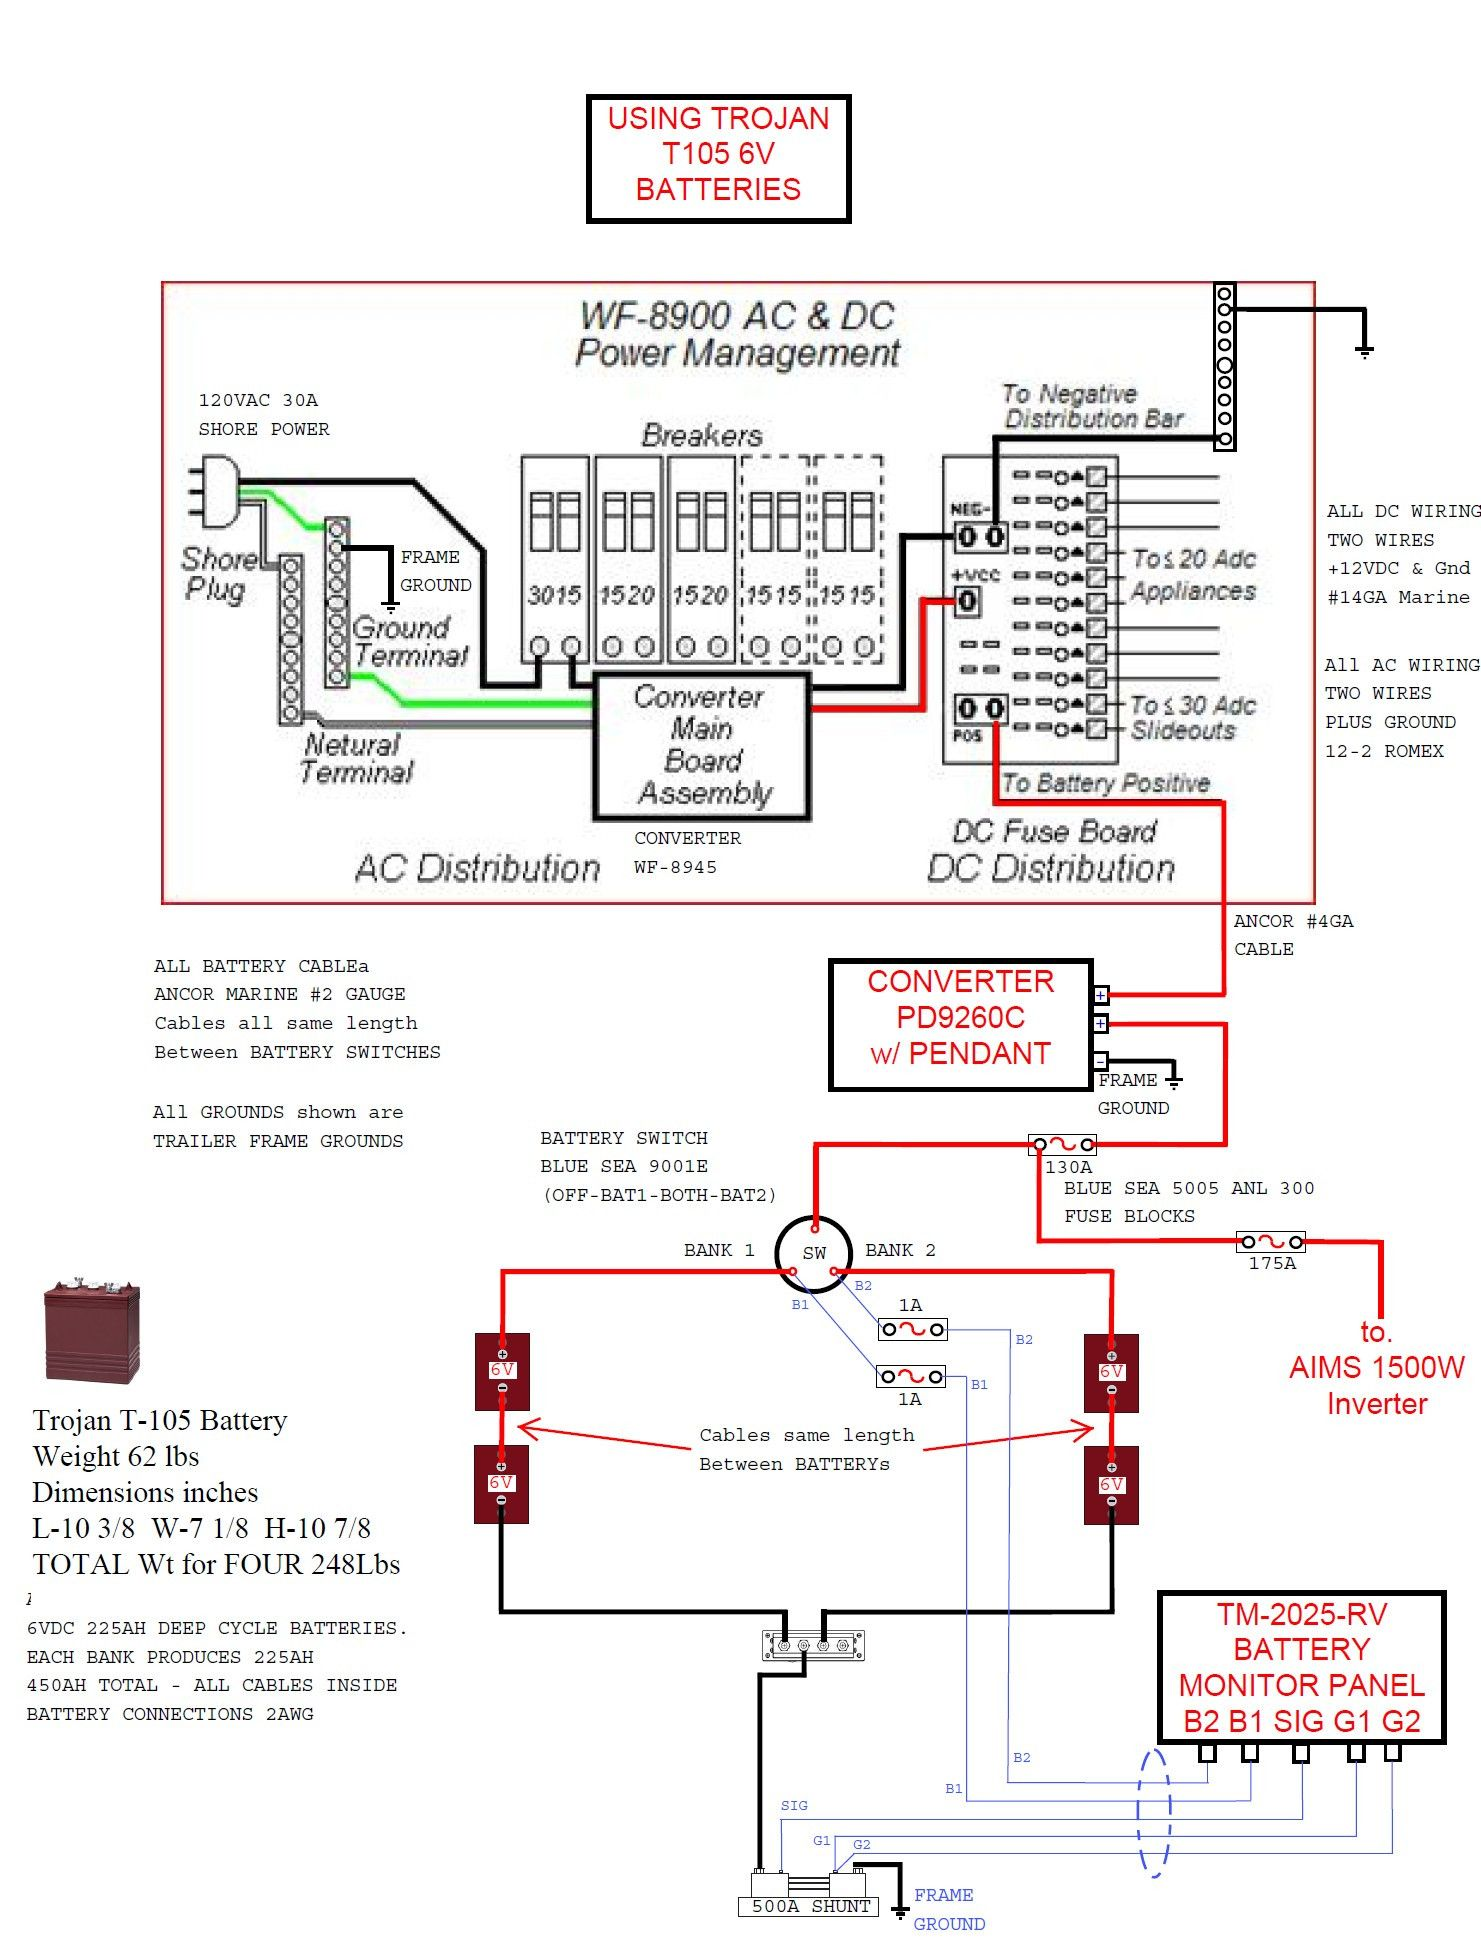 Jayco Pop Up Camper Wiring Diagram from i.pinimg.com